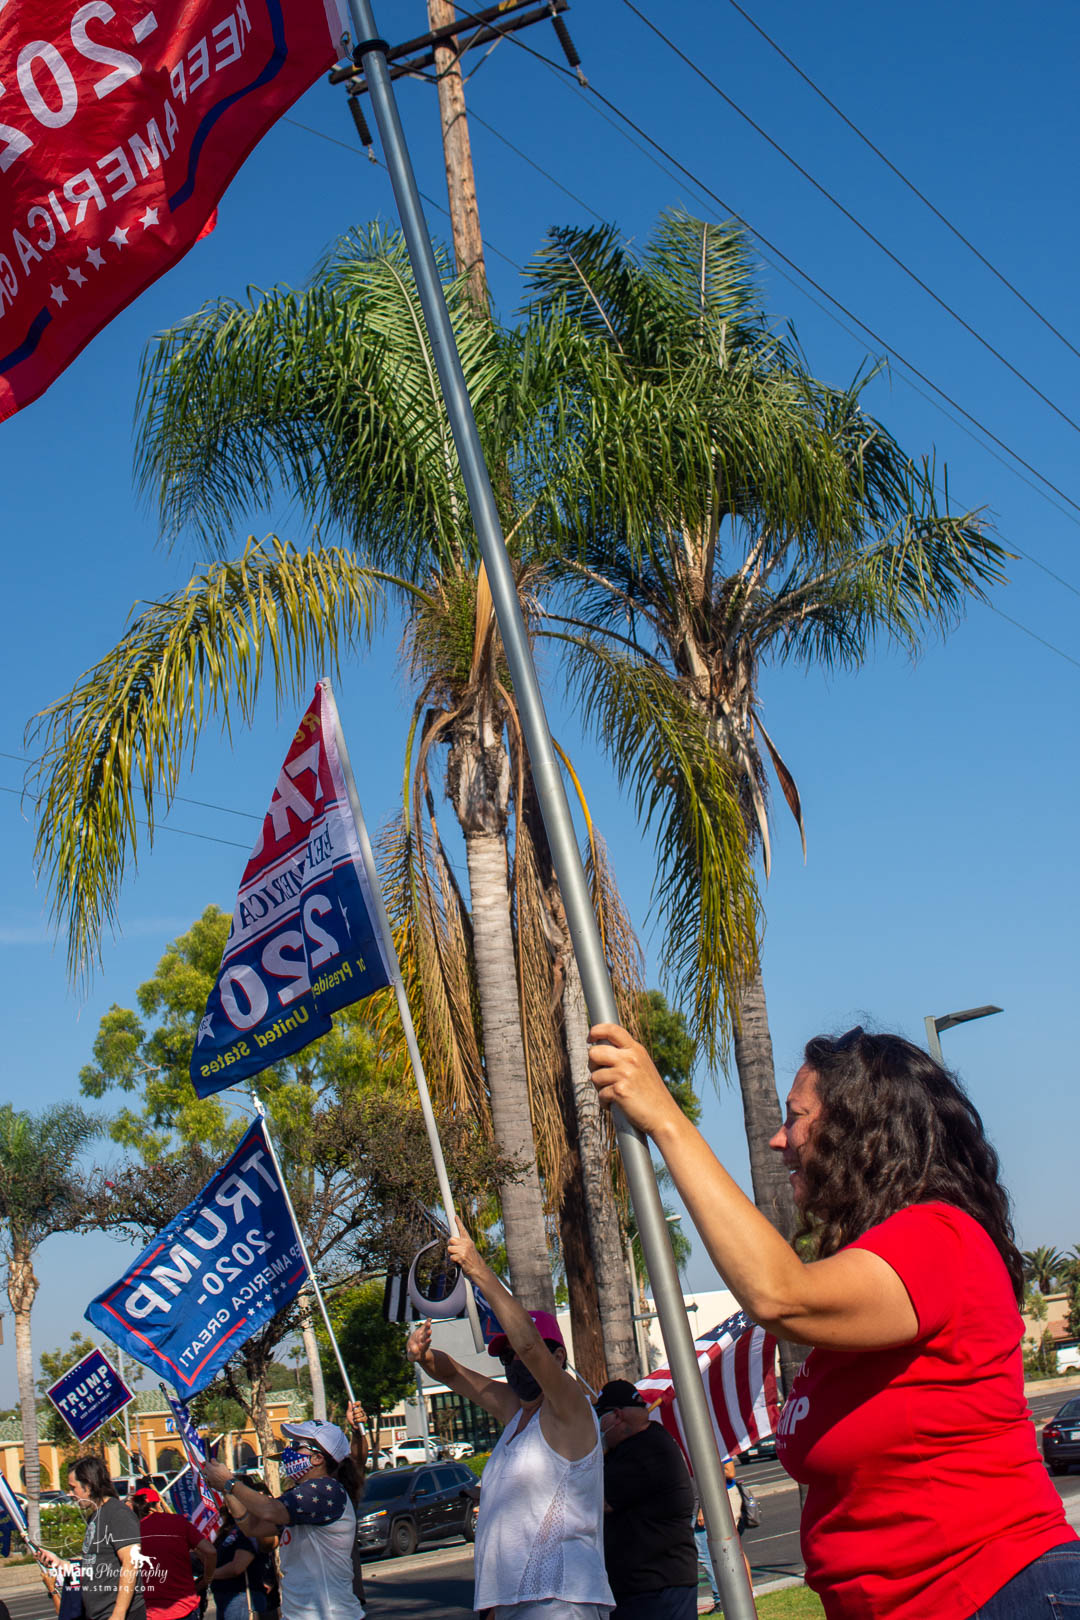 Caroline Hesse holds a pole with a Trump 2020 flag in support of the president at a Rally she and her boyfriend, Steven co-organized on Sunday, October 18, 2020 in La Habra, California.